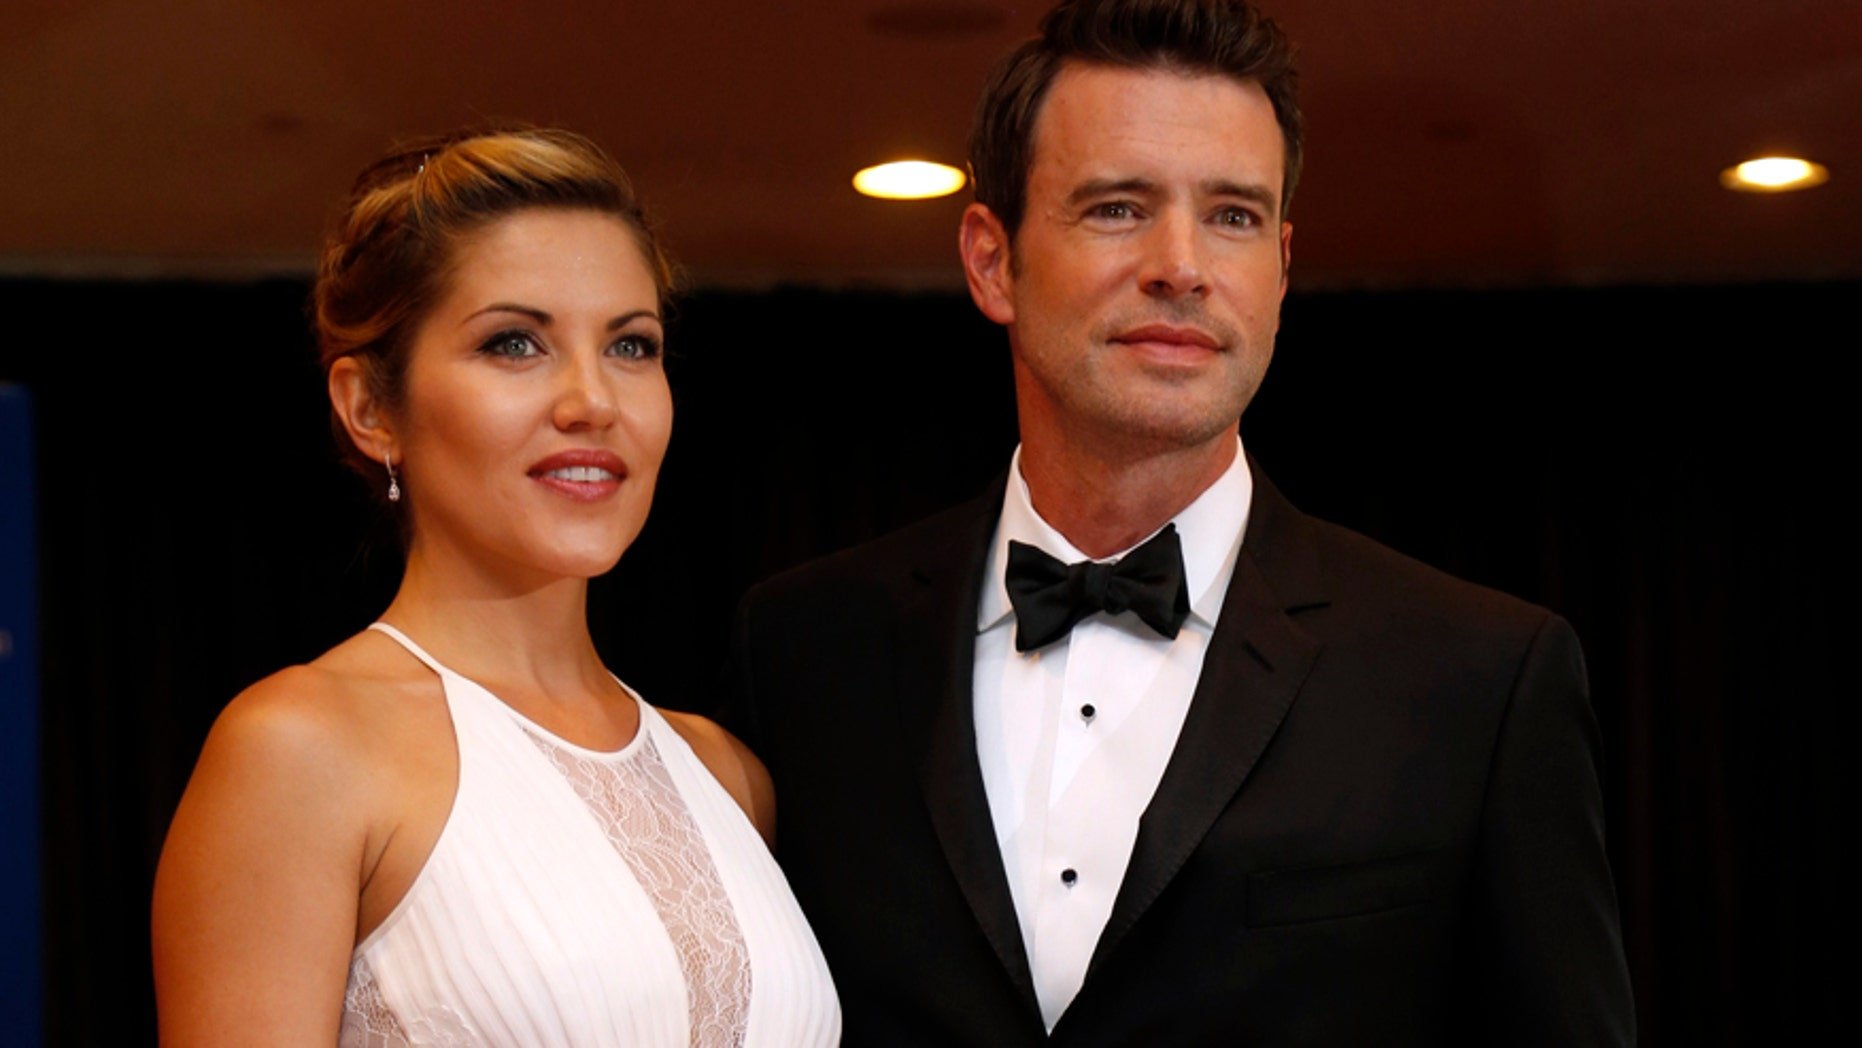 Actor Scott Foley and his wife, Marika Dominczyk, arrive on the red carpet at the annual White House Correspondents' Association Dinner in Washington, May 3, 2014.